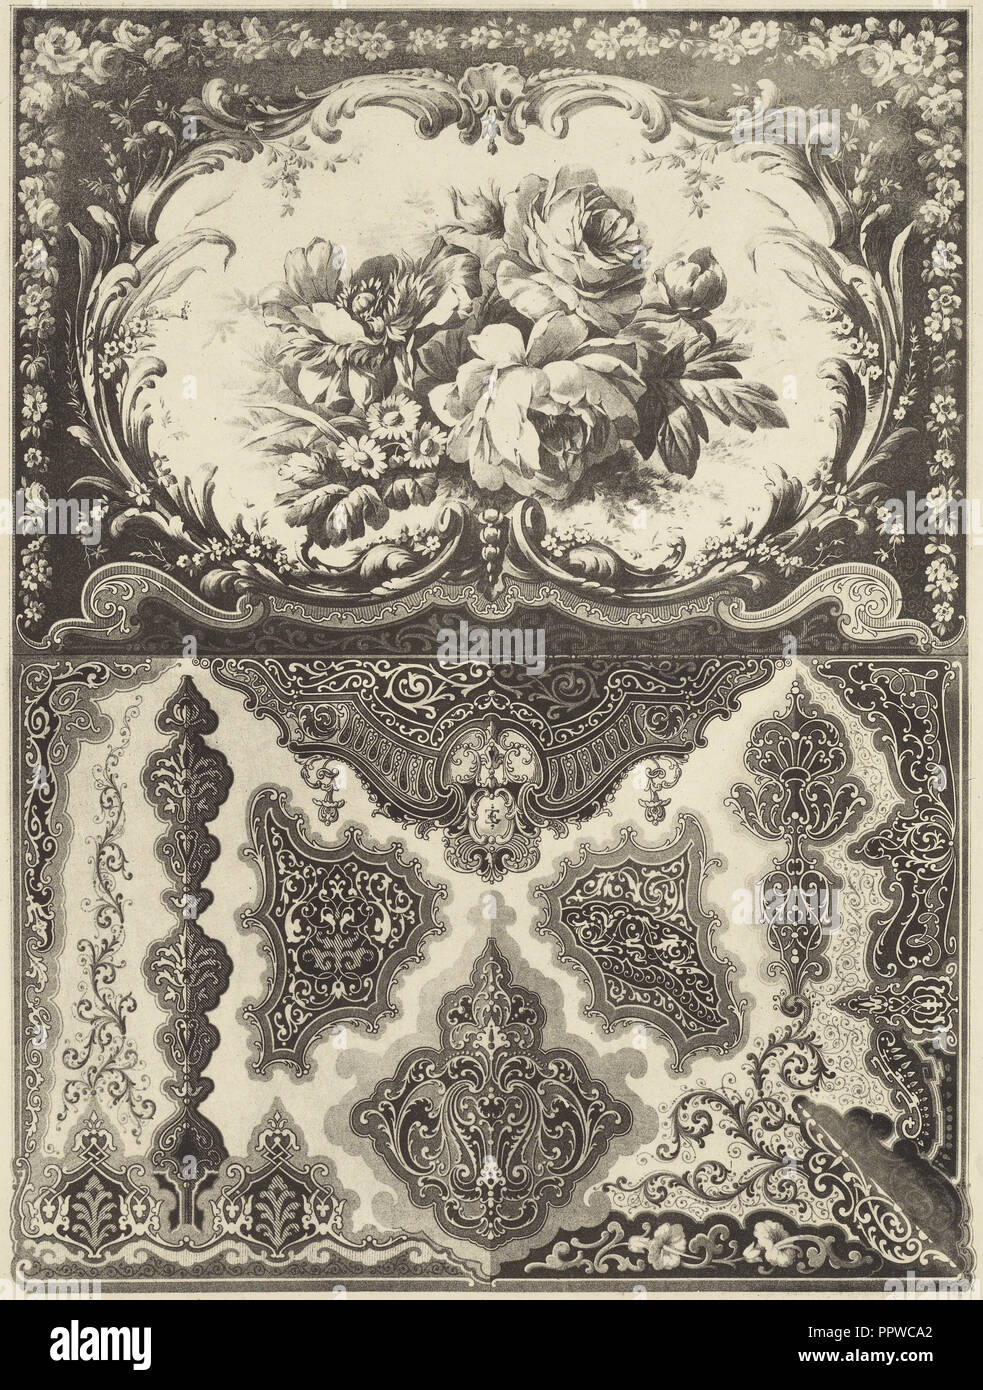 Decorative Pattern; E. Guichard, French, active 19th century, mid - late 19th century; Lithograph; 33 x 24.8 cm 13 x 9 3,4 in - Stock Image